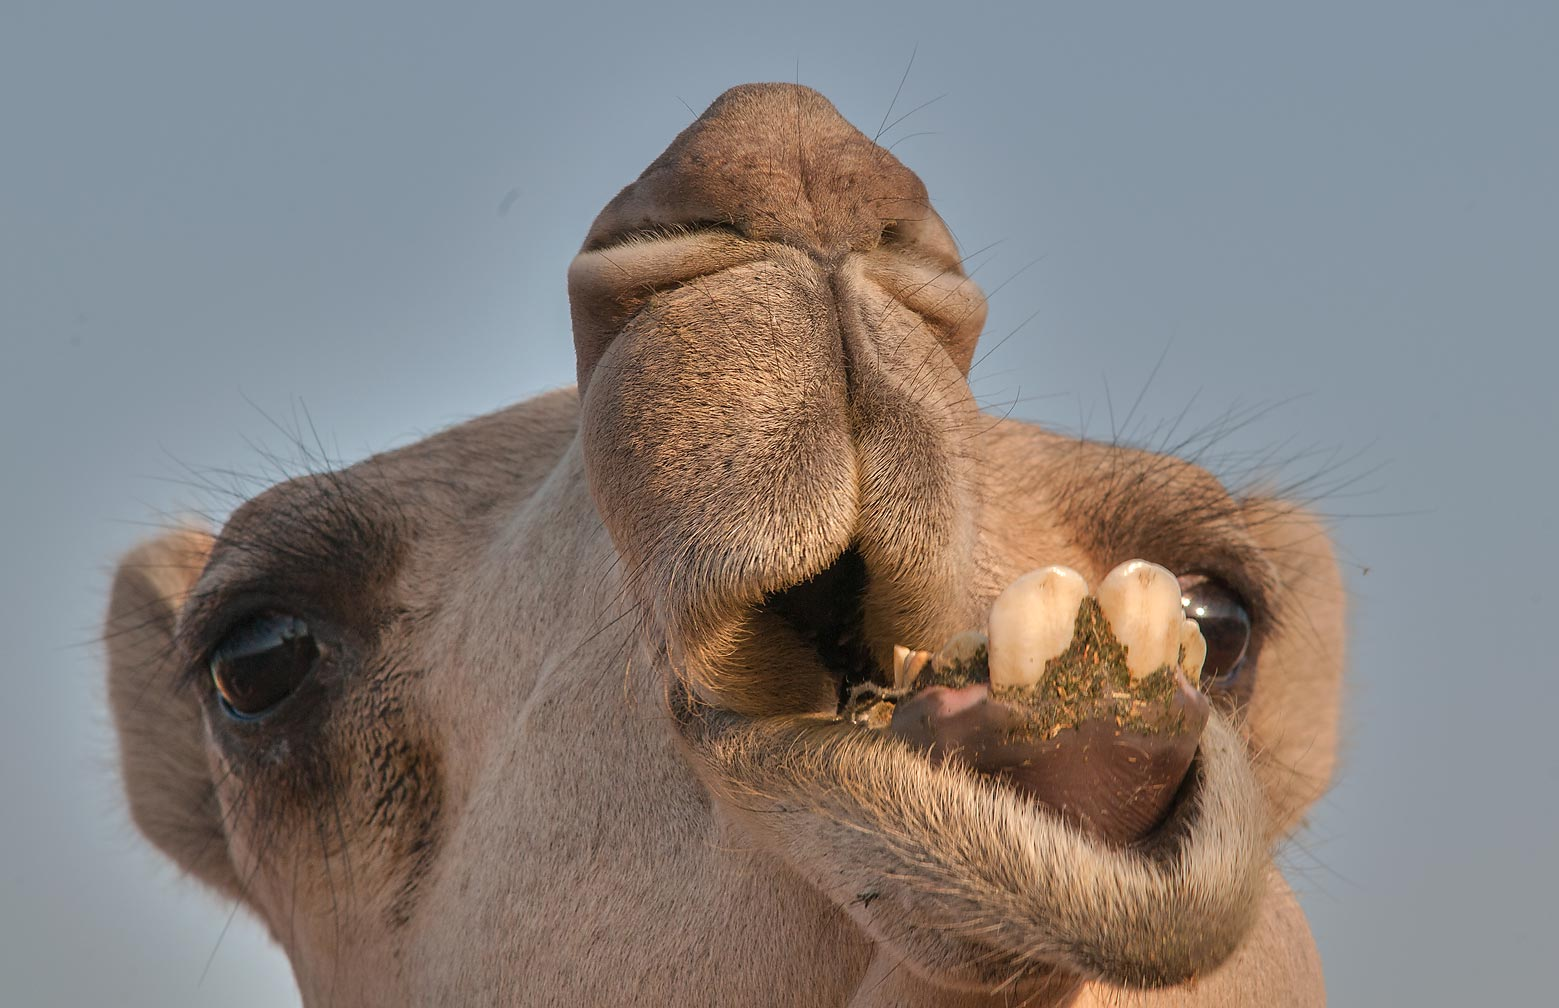 Chewing camel in Camel Market (Souq), Wholesale Markets area. Doha, Qatar